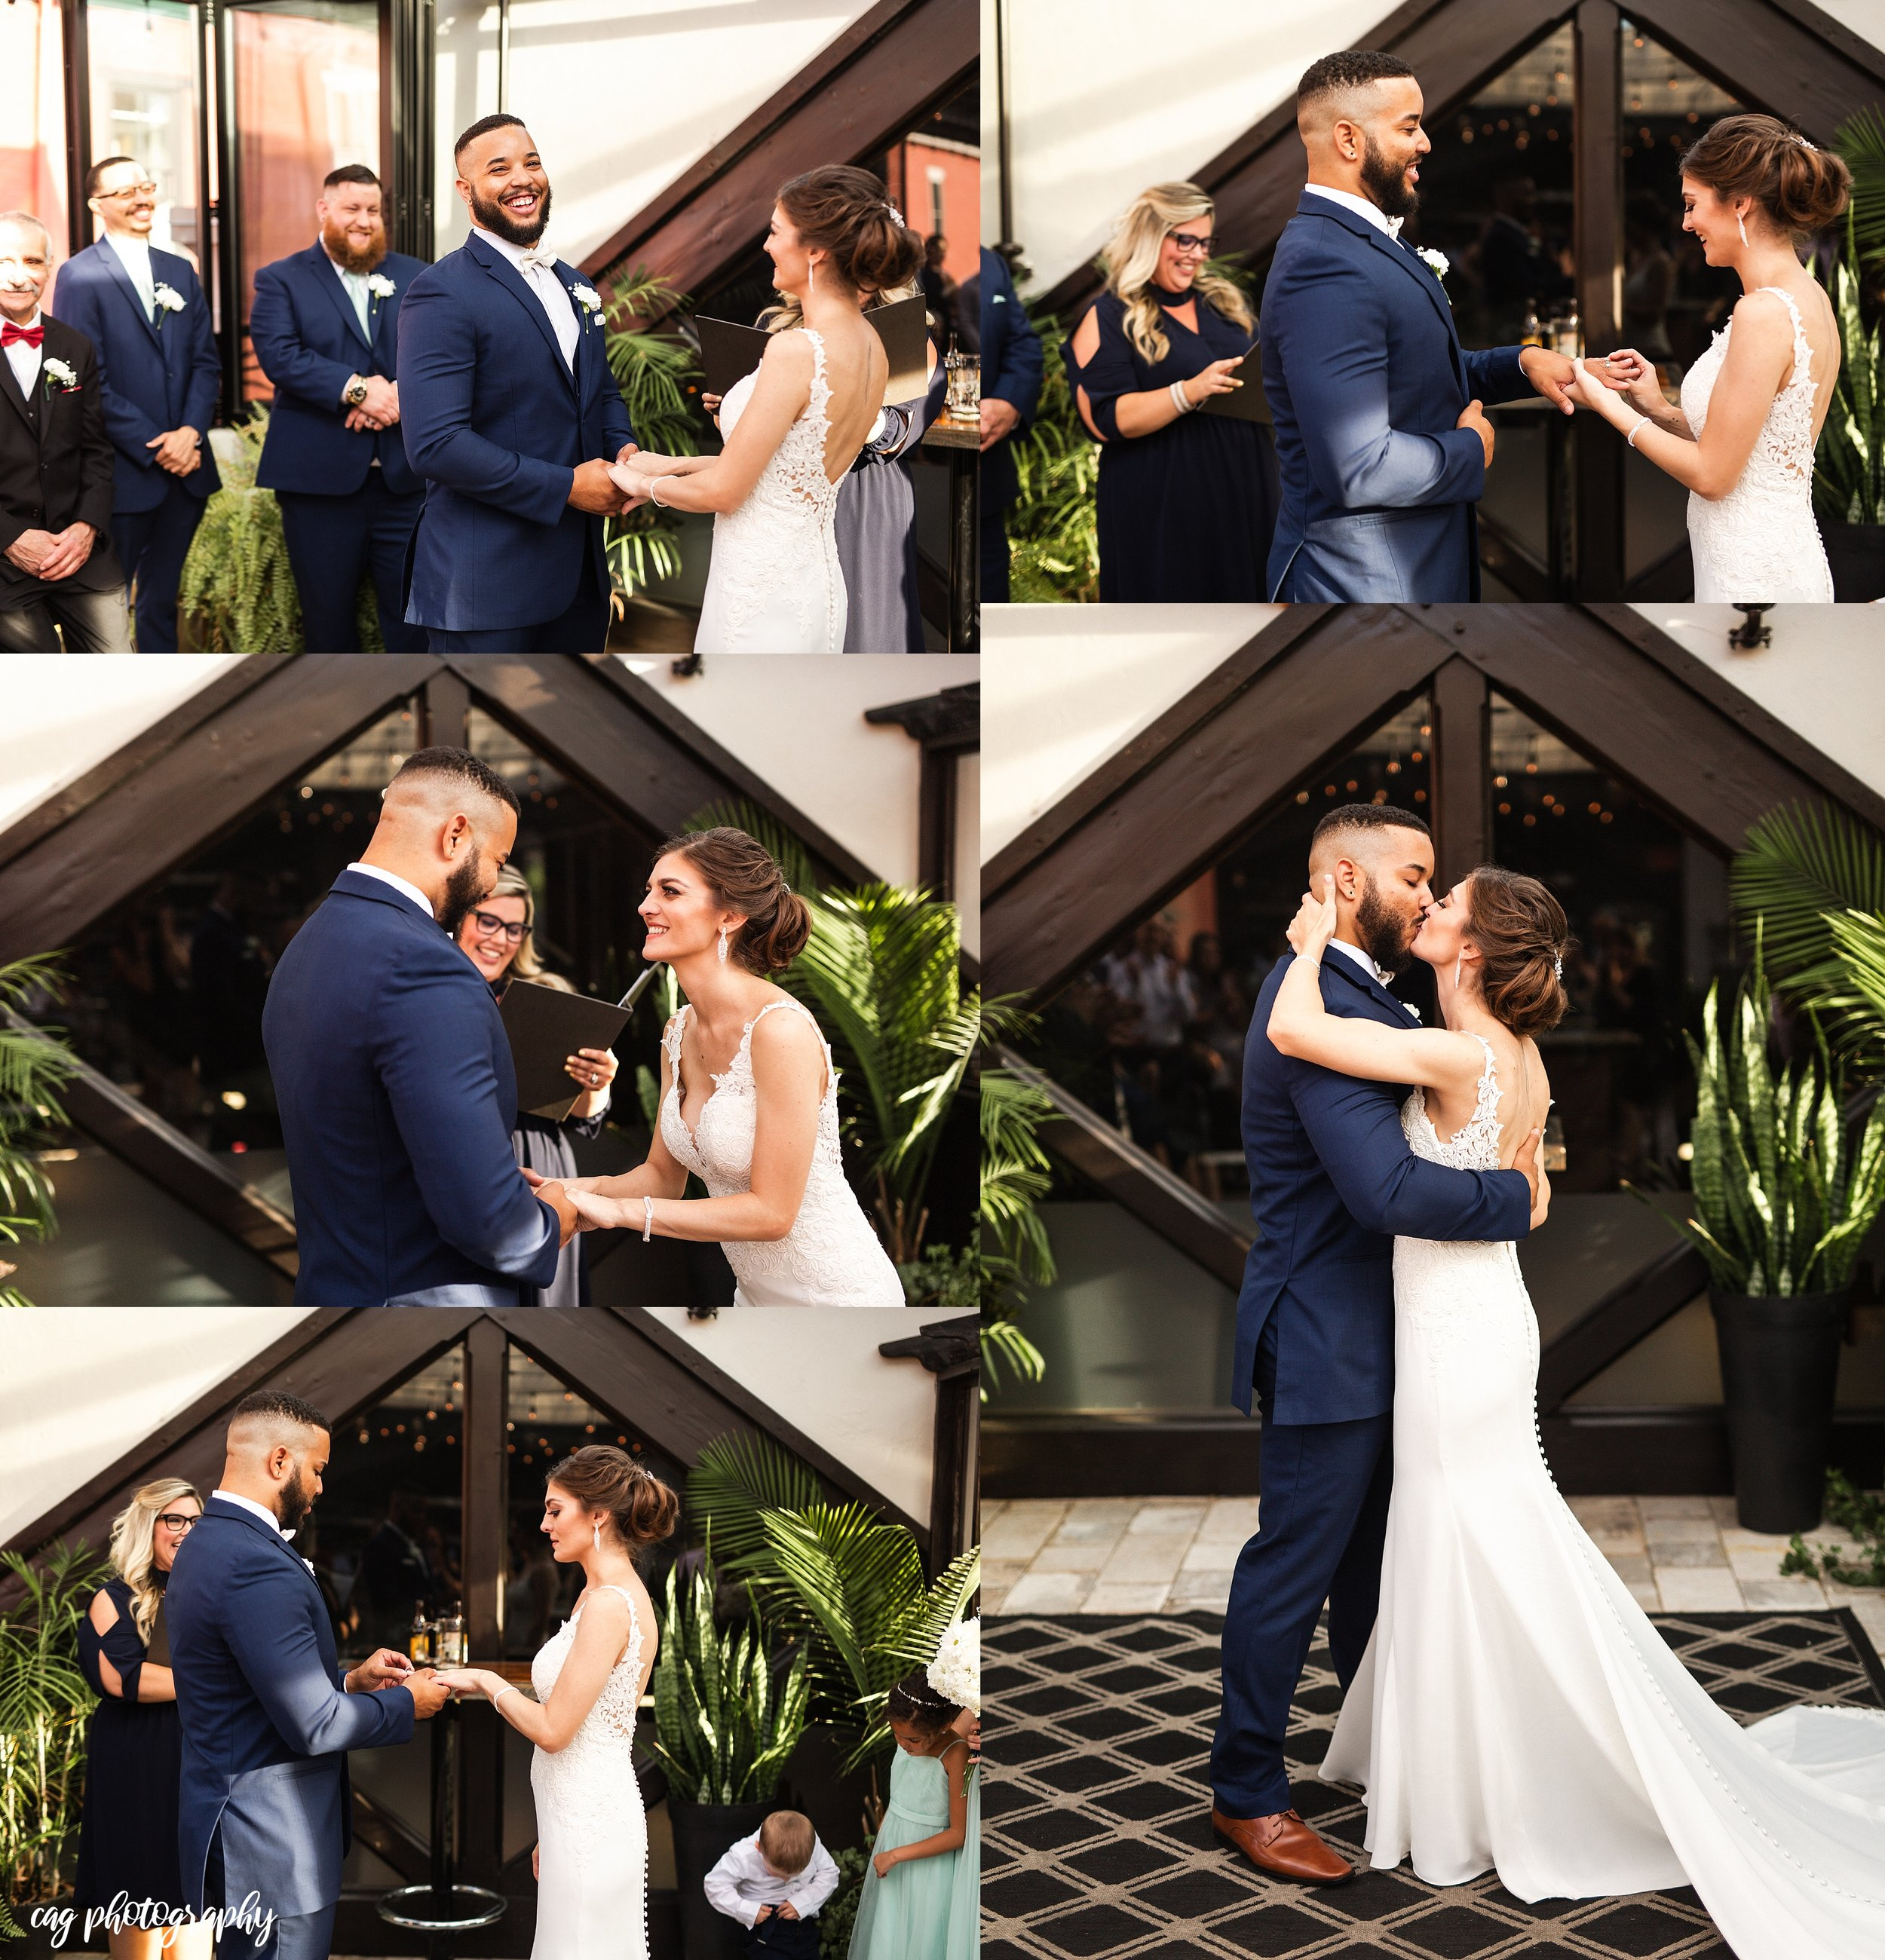 Sarah+Talon MARRED-424.jpg